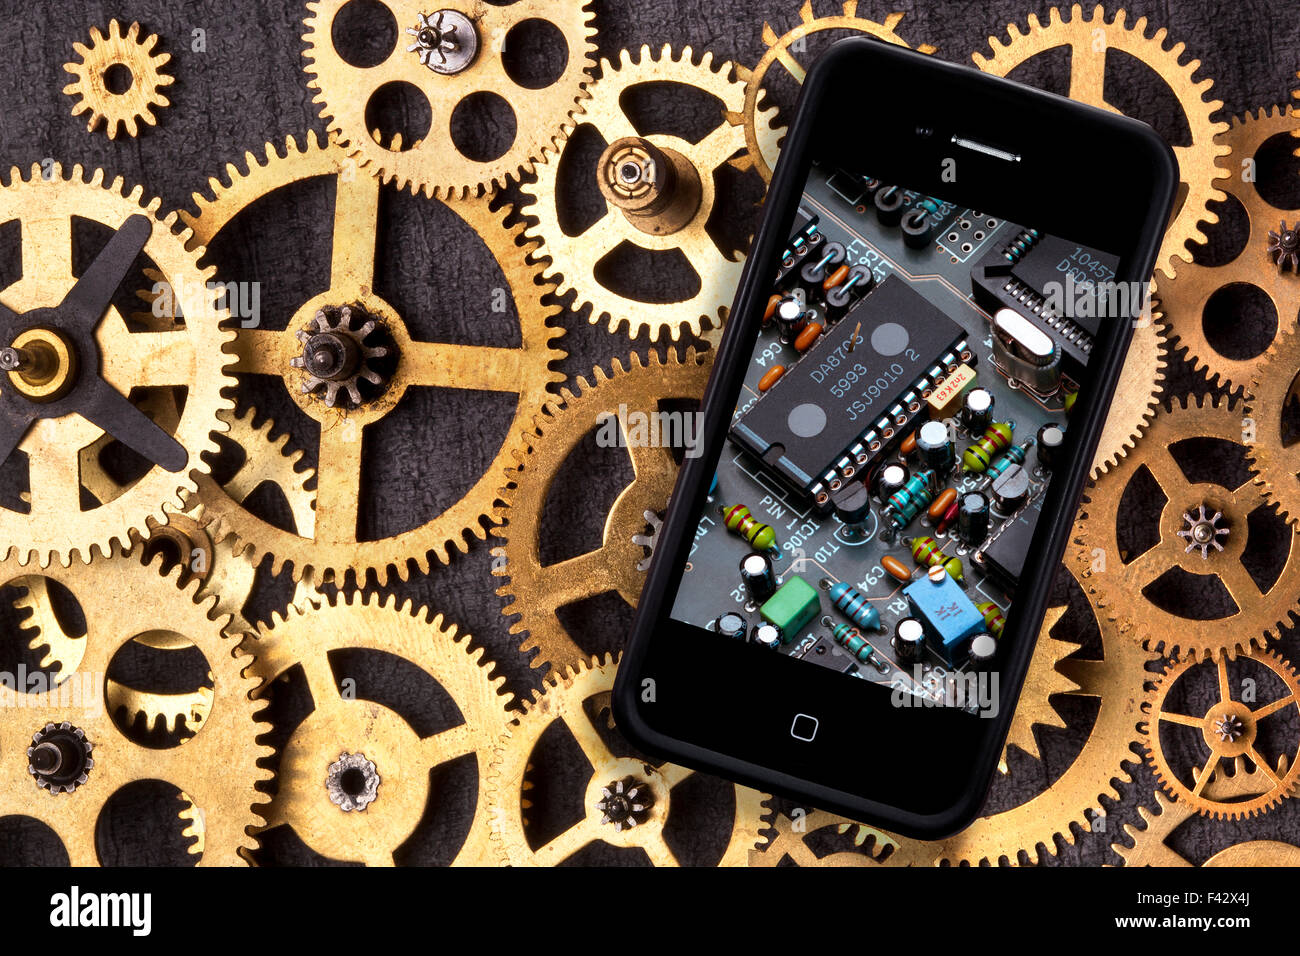 Old and New Technology - Old clockwork cogs and gears and a smartphone with digital technology - Stock Image